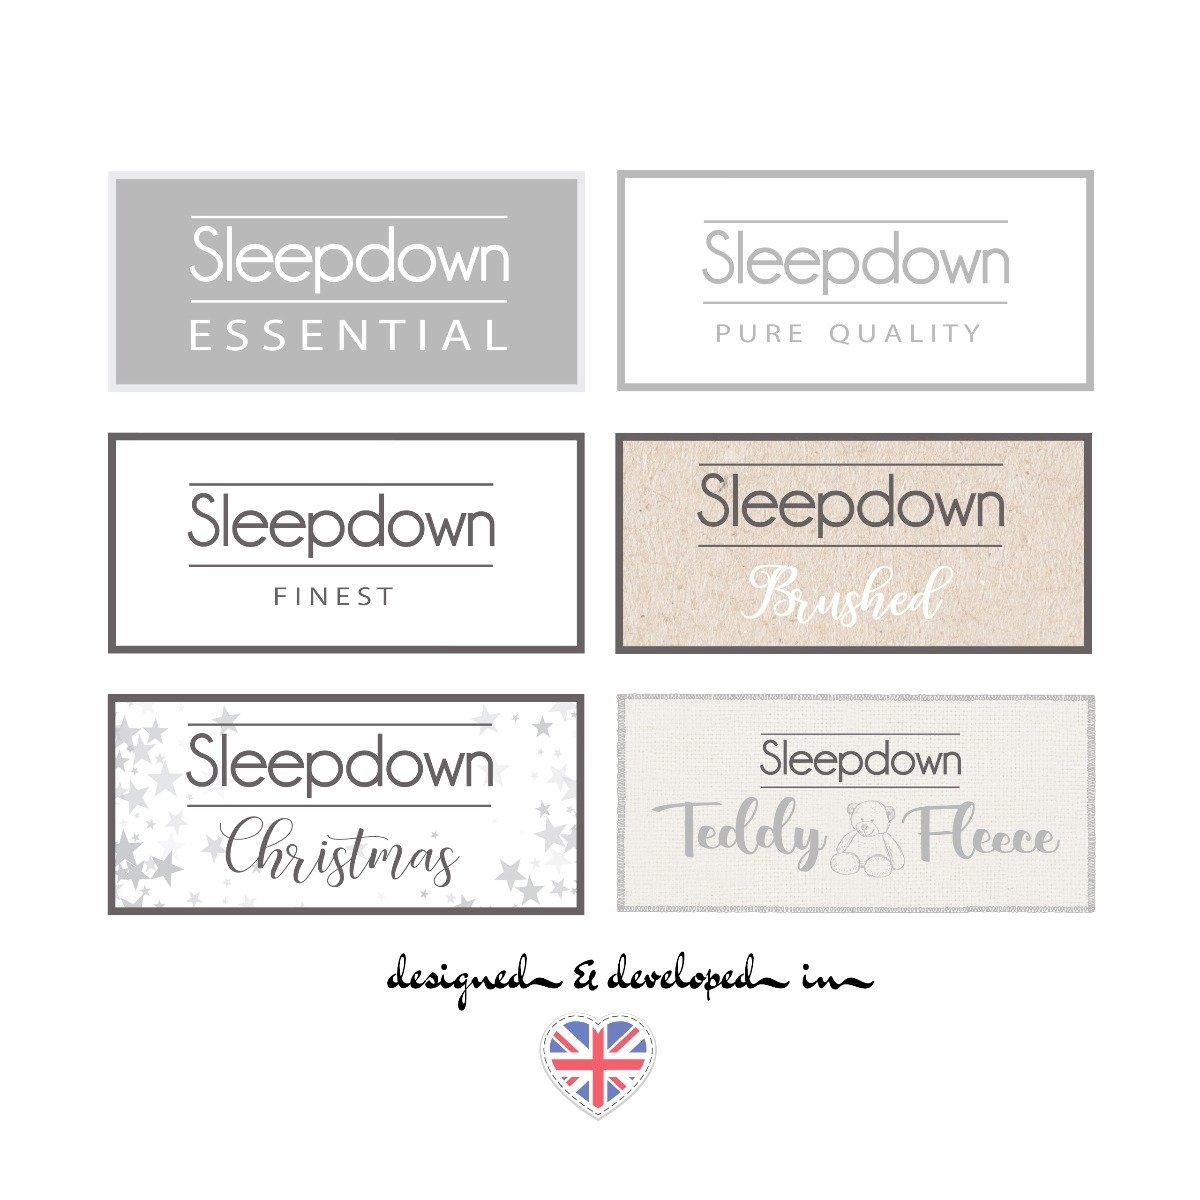 Sleepdown Official